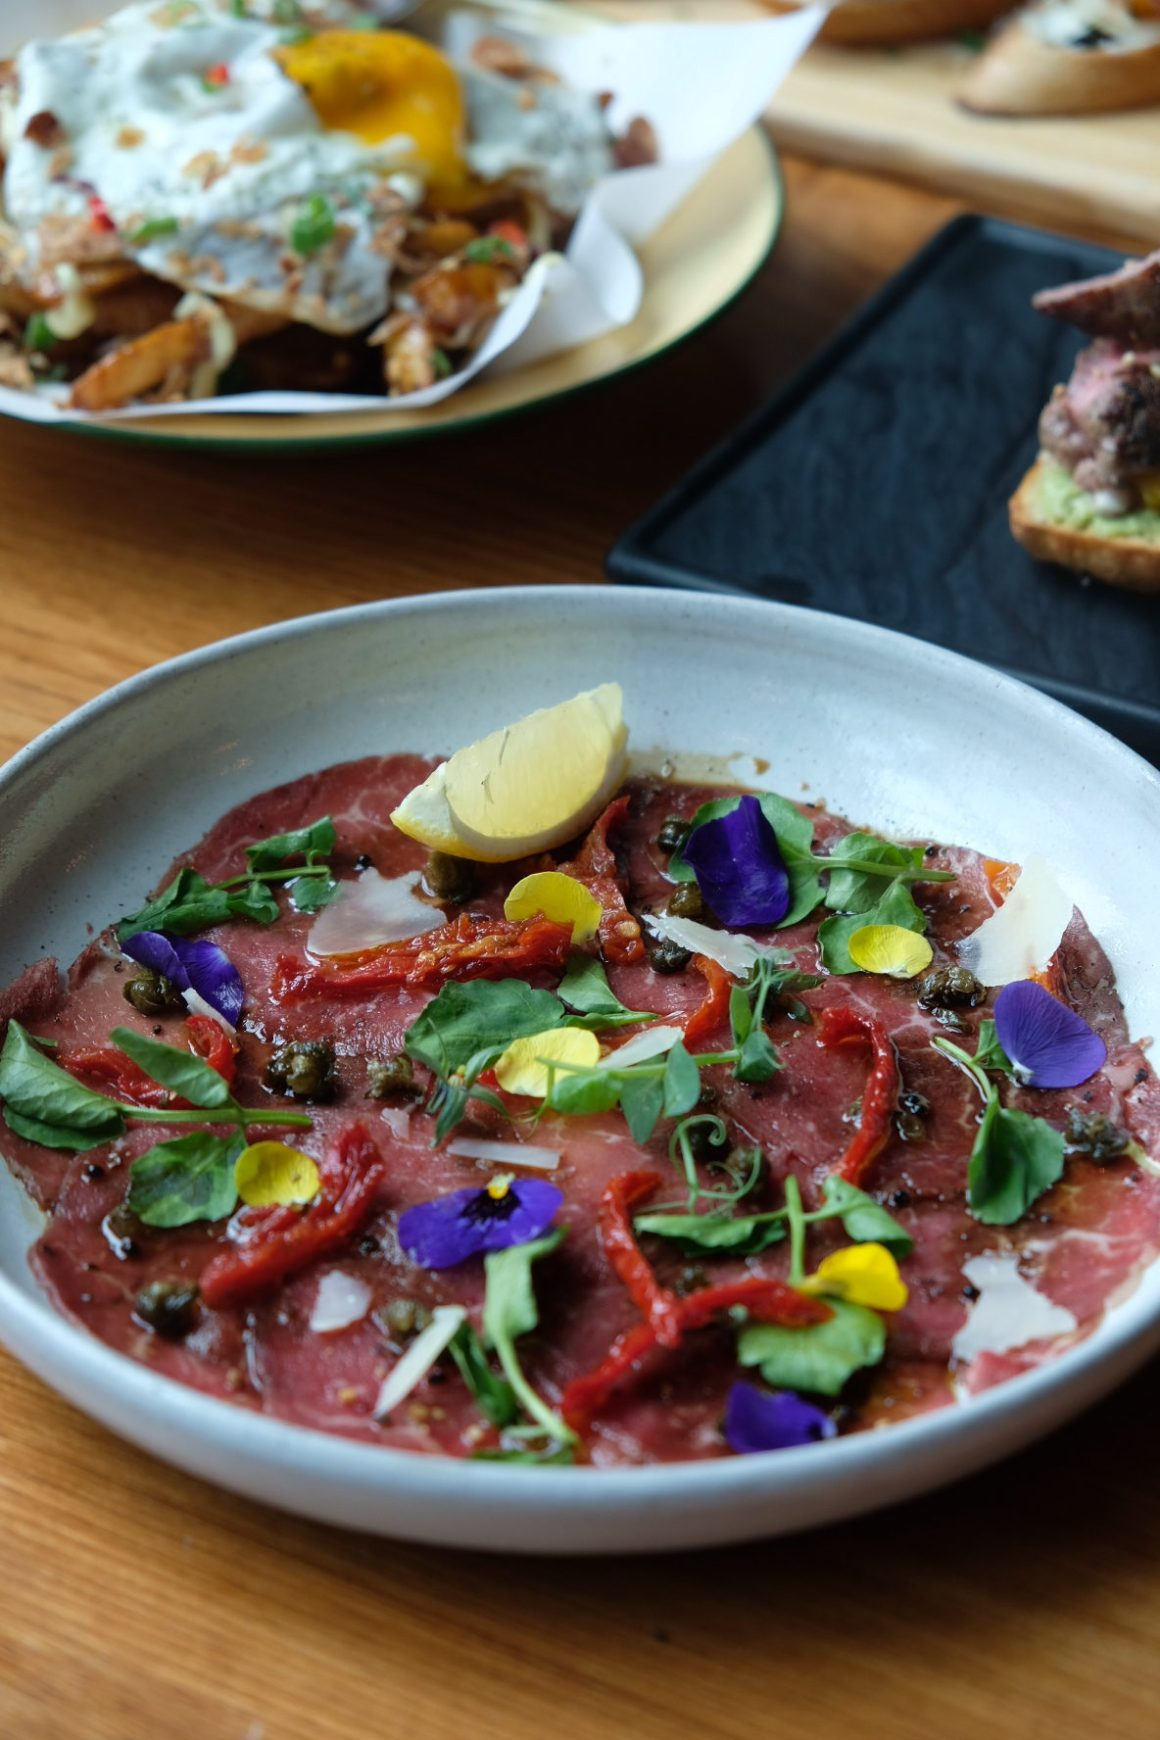 Supply & Demand Orchardgateway New Menu - Beef Carpaccio ($15)